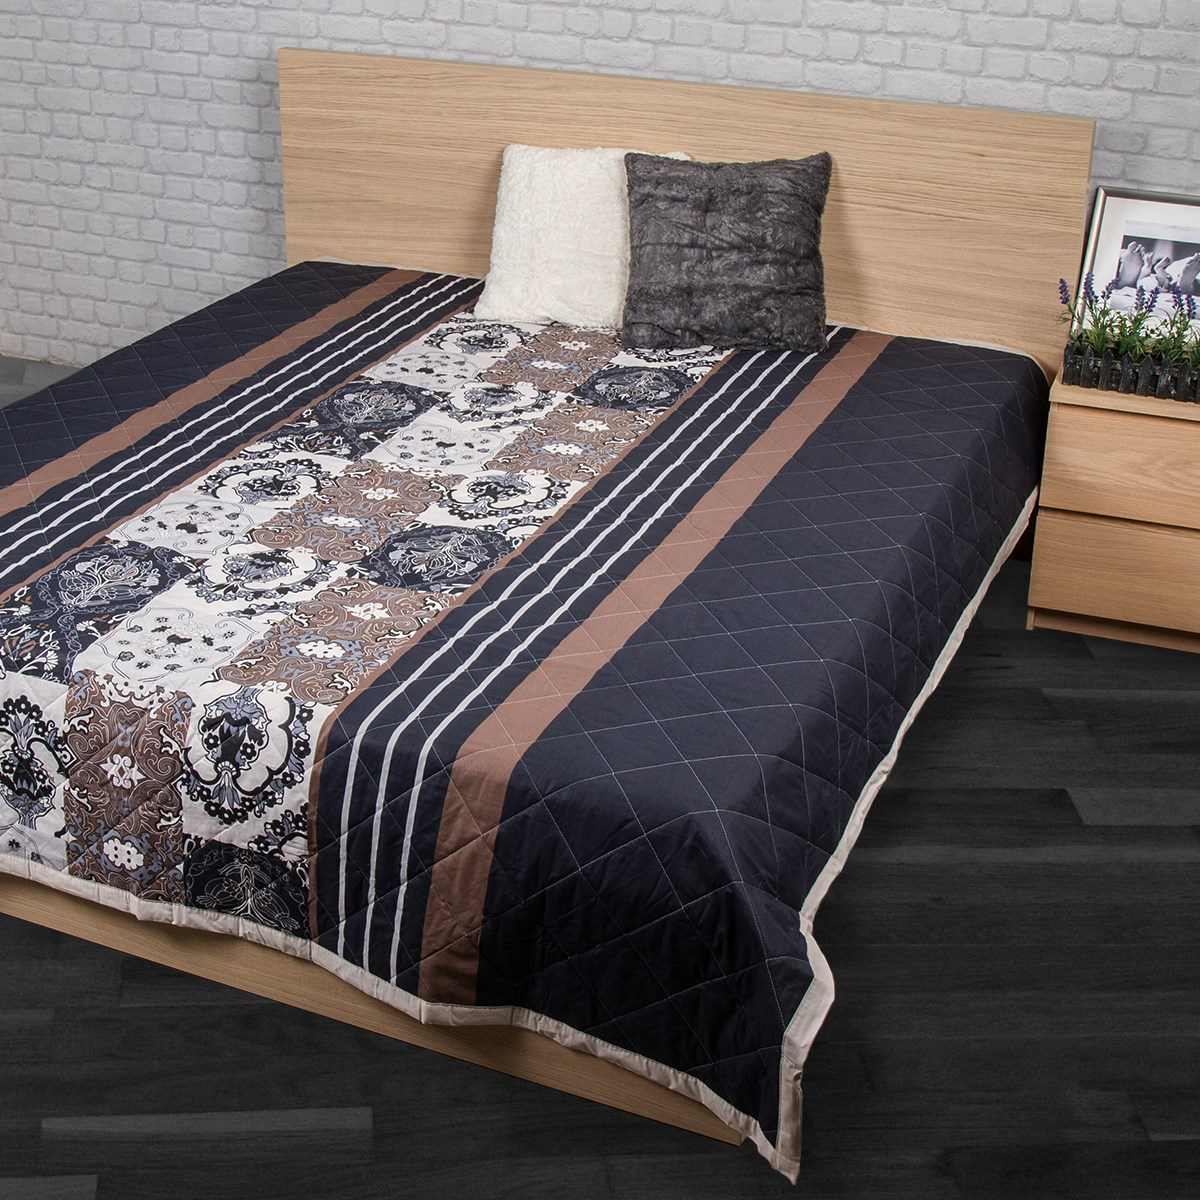 night in colours paolina gytakar sz rke 160 x 220 cm 160 x 220 cm lakberendez s. Black Bedroom Furniture Sets. Home Design Ideas